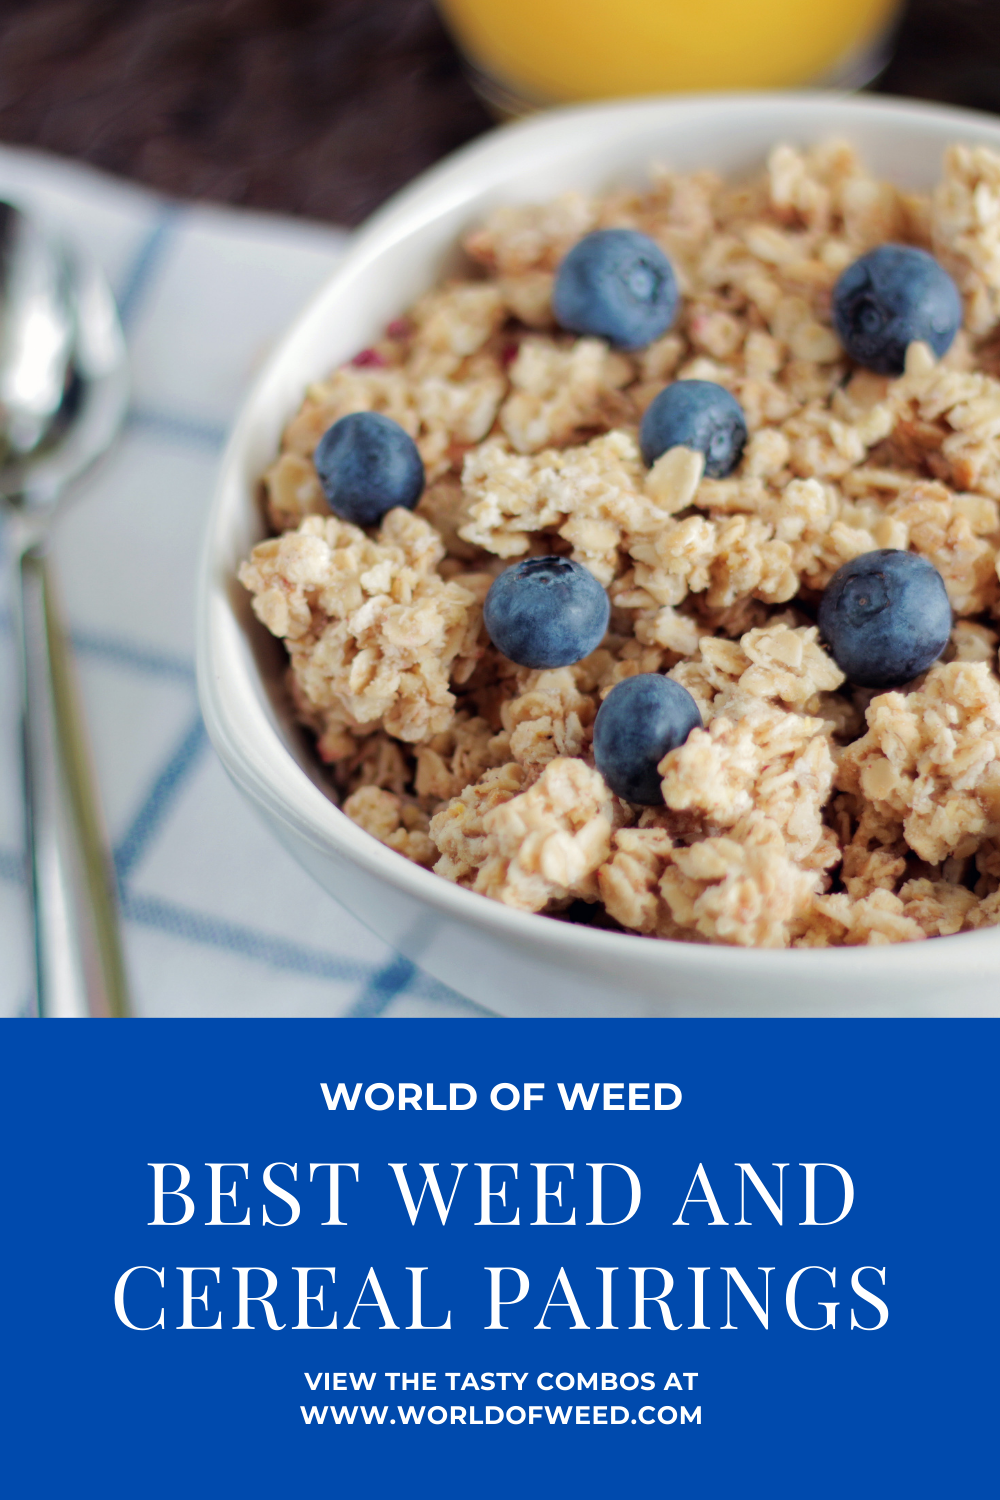 Best Weed and Cereal Pairings for the Hungry Stoner